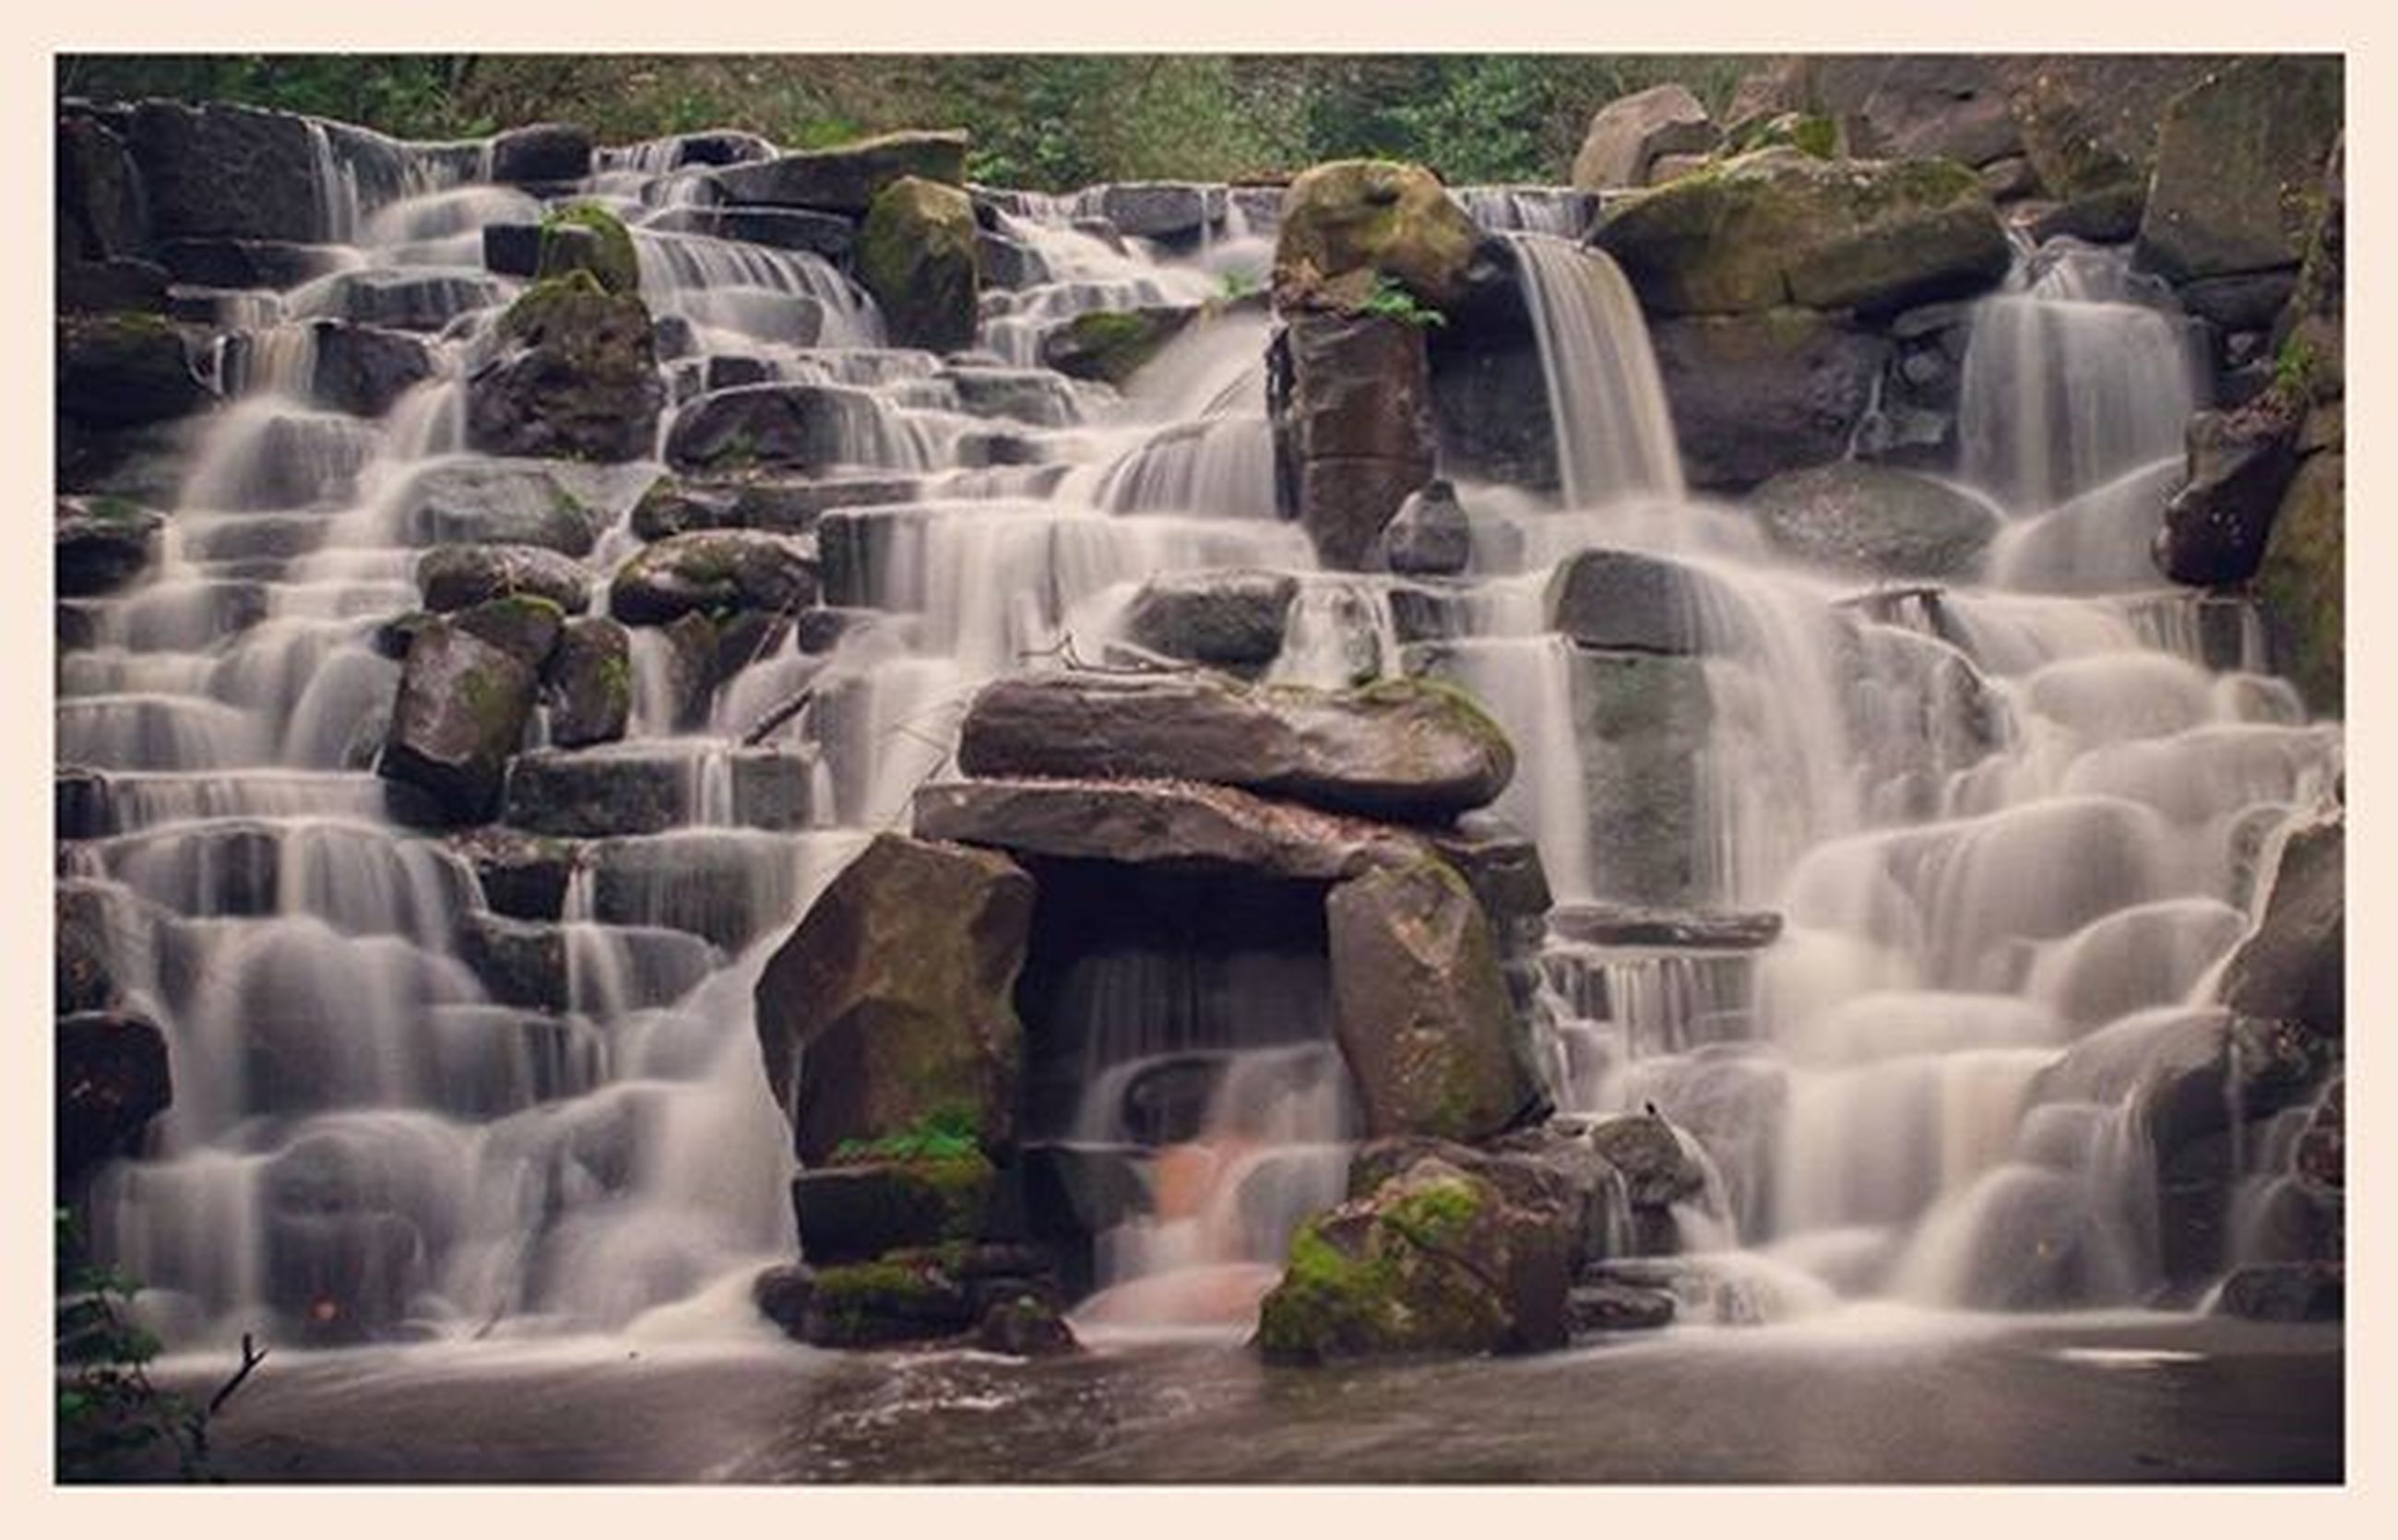 waterfall, motion, flowing water, long exposure, water, flowing, splashing, rock - object, fountain, nature, blurred motion, beauty in nature, day, scenics, outdoors, power in nature, spraying, no people, low angle view, environment